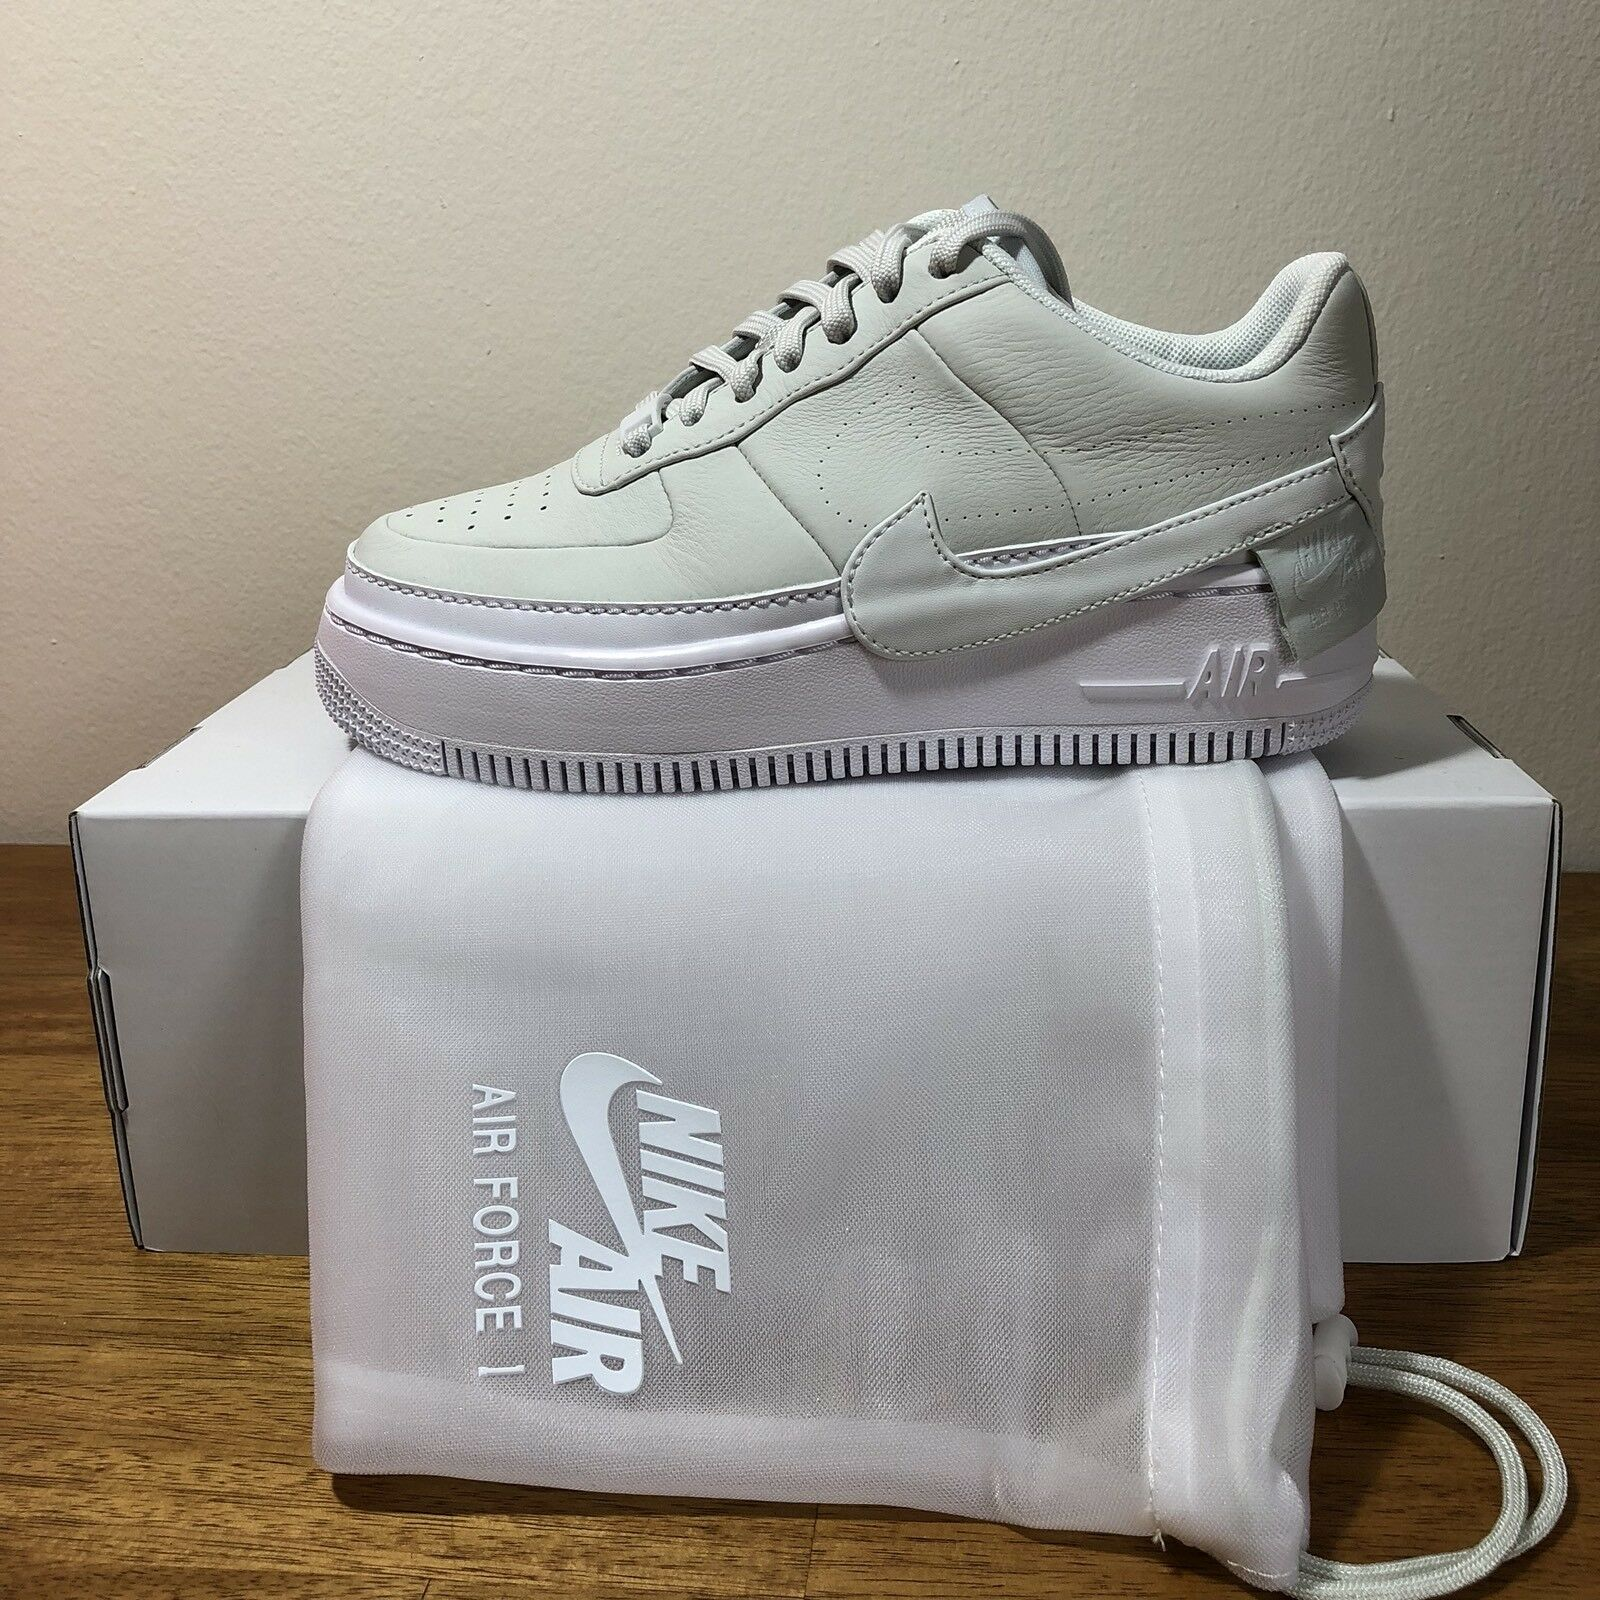 NIKE AIR FORCE 1 JESTER XX OFF WHITE AO1220-100 WOMEN'S SIZE 8